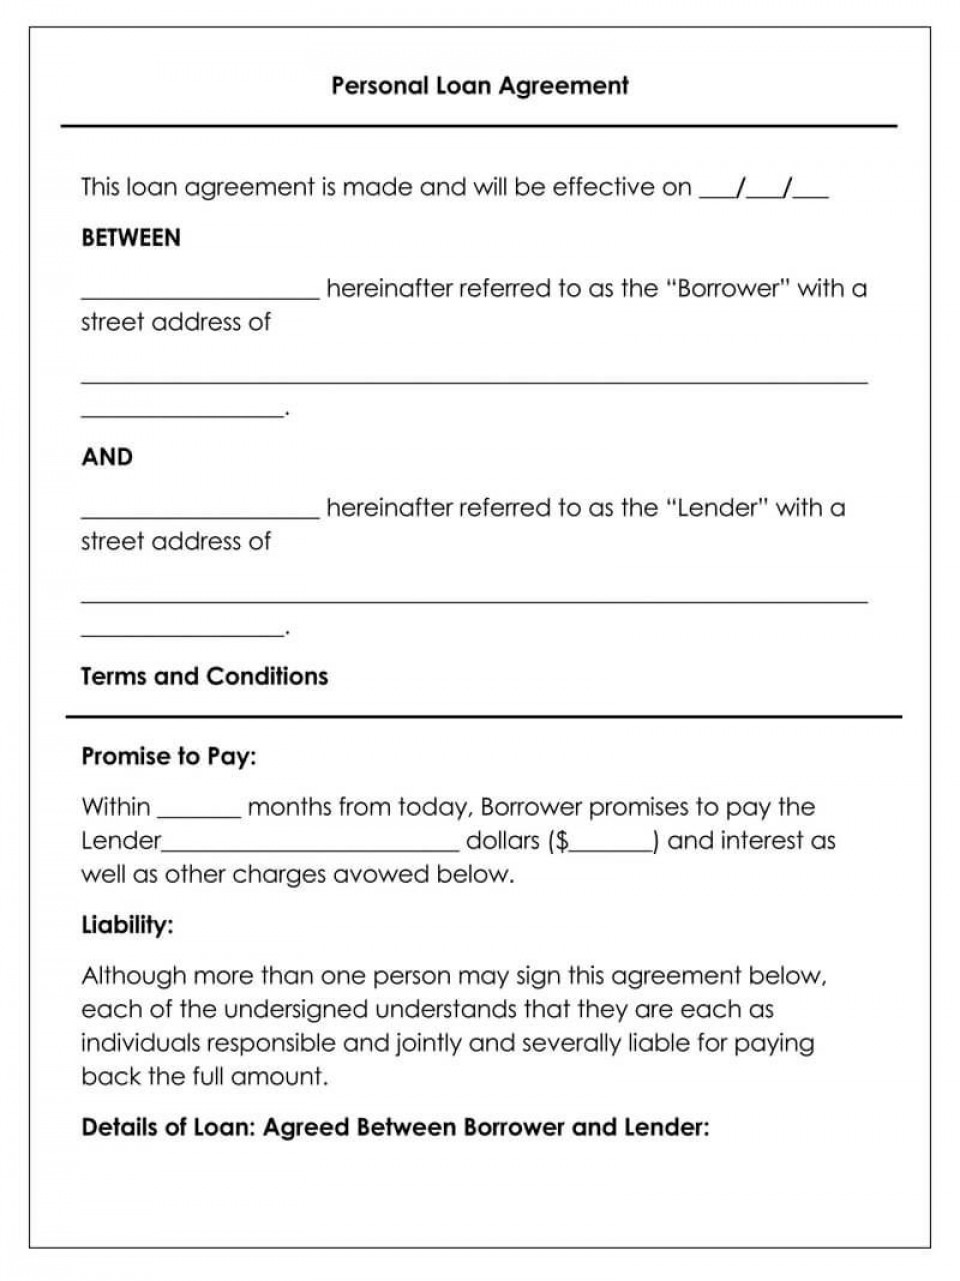 006 Archaicawful Personal Loan Agreement Template Example  Contract Free Word Format South Africa960